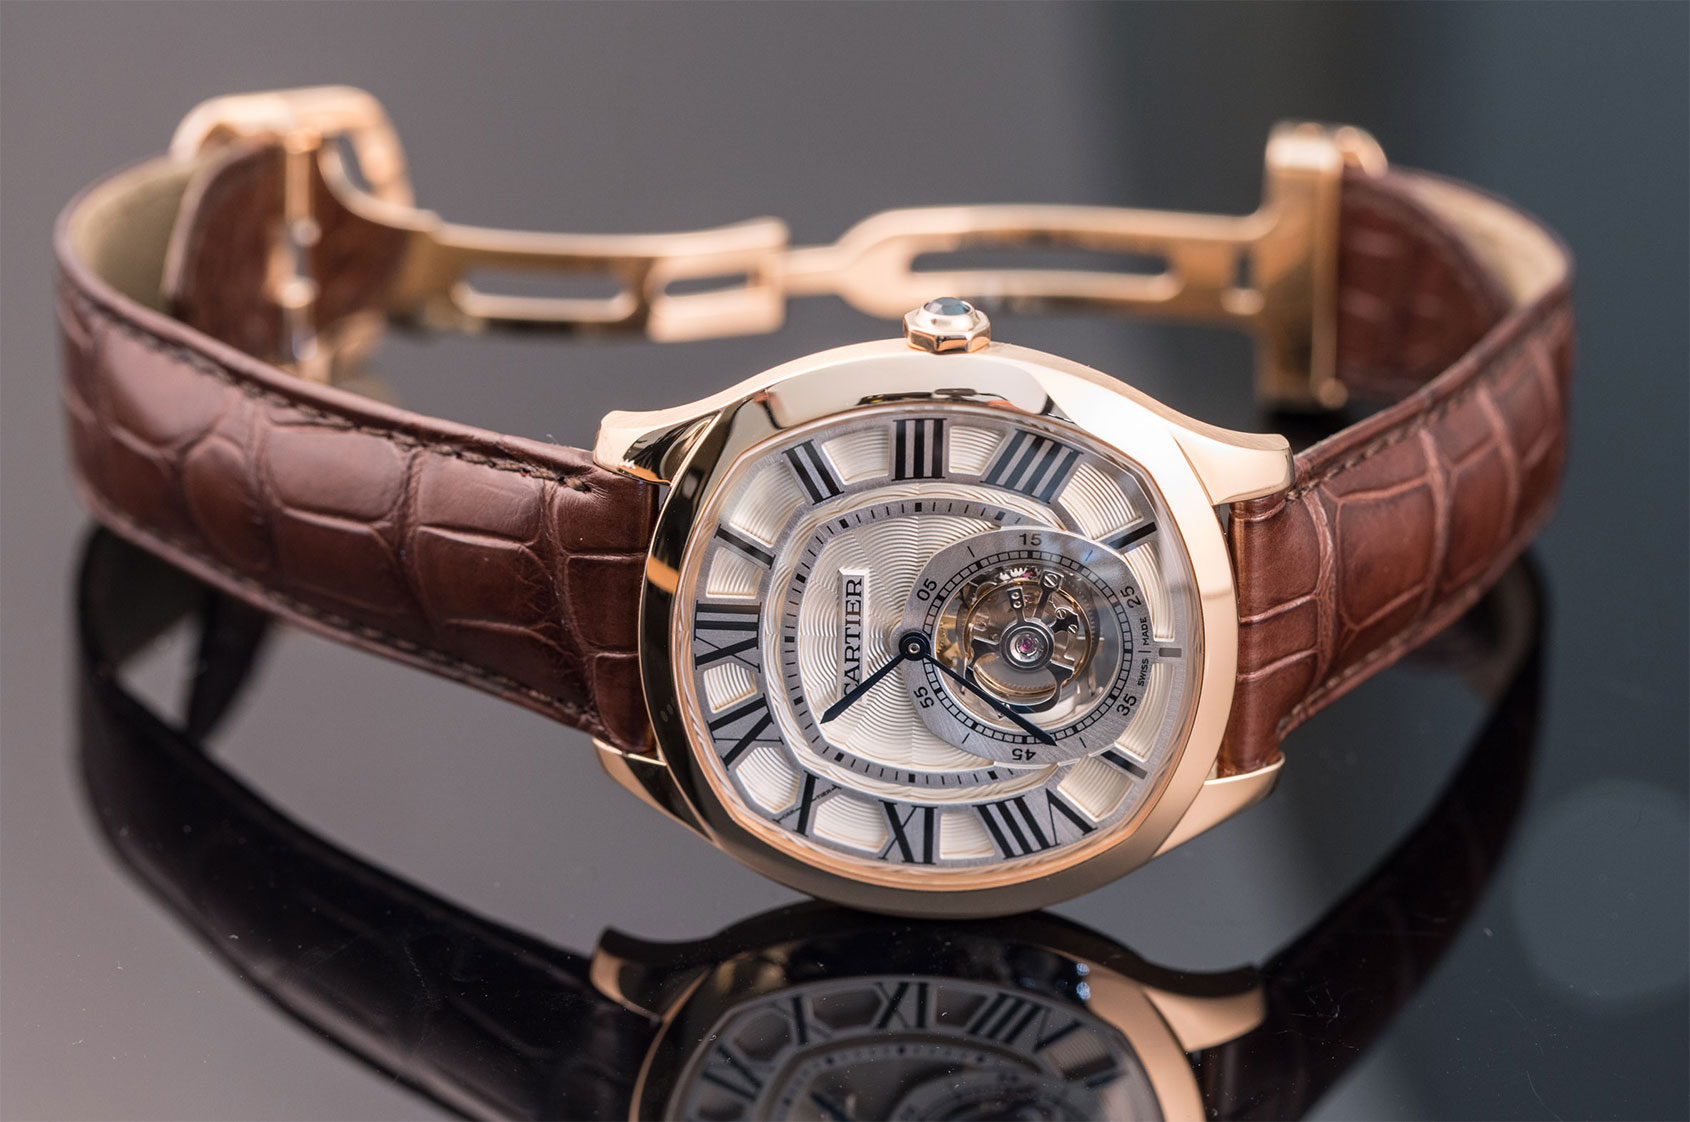 d3aba1f746f The crowning achievement of the collection is the Drive de Cartier Flying  Tourbillon with its in-house